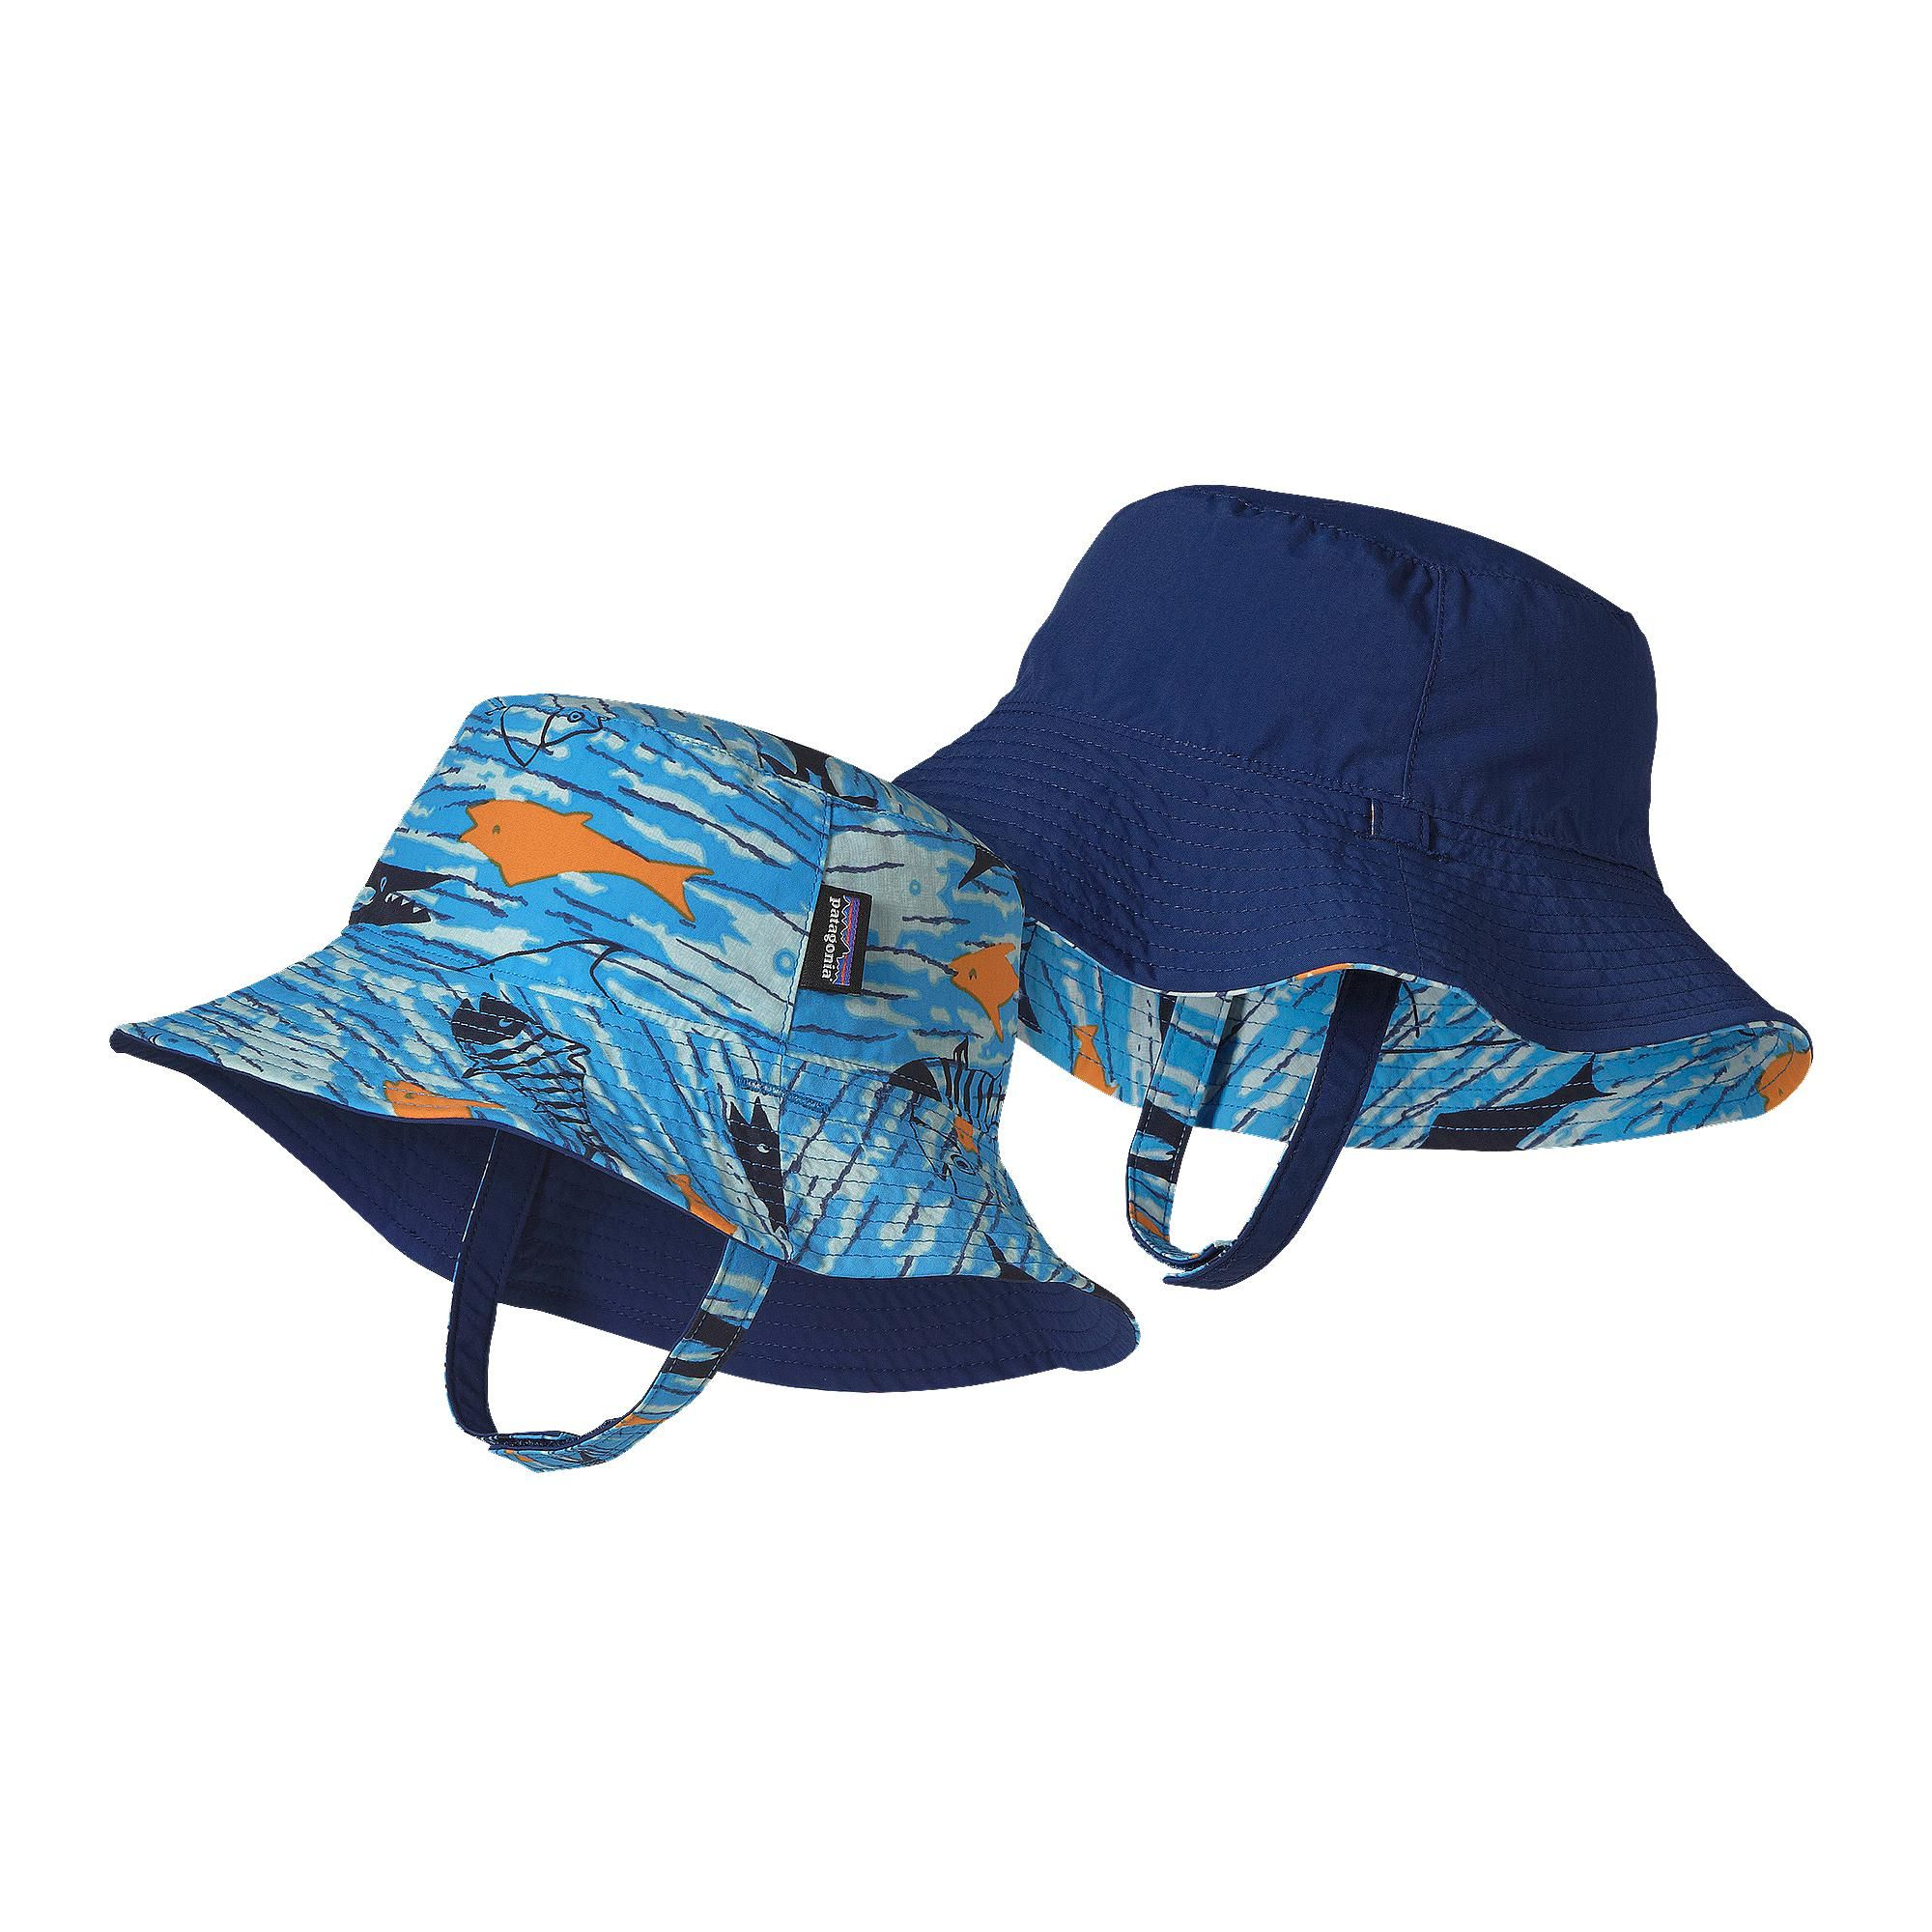 45361f45 The Patagonia Baby Sun Bucket Hat offers 50+ UPF sun protection and fun  reversible colors and prints for all-day fun in the sun.